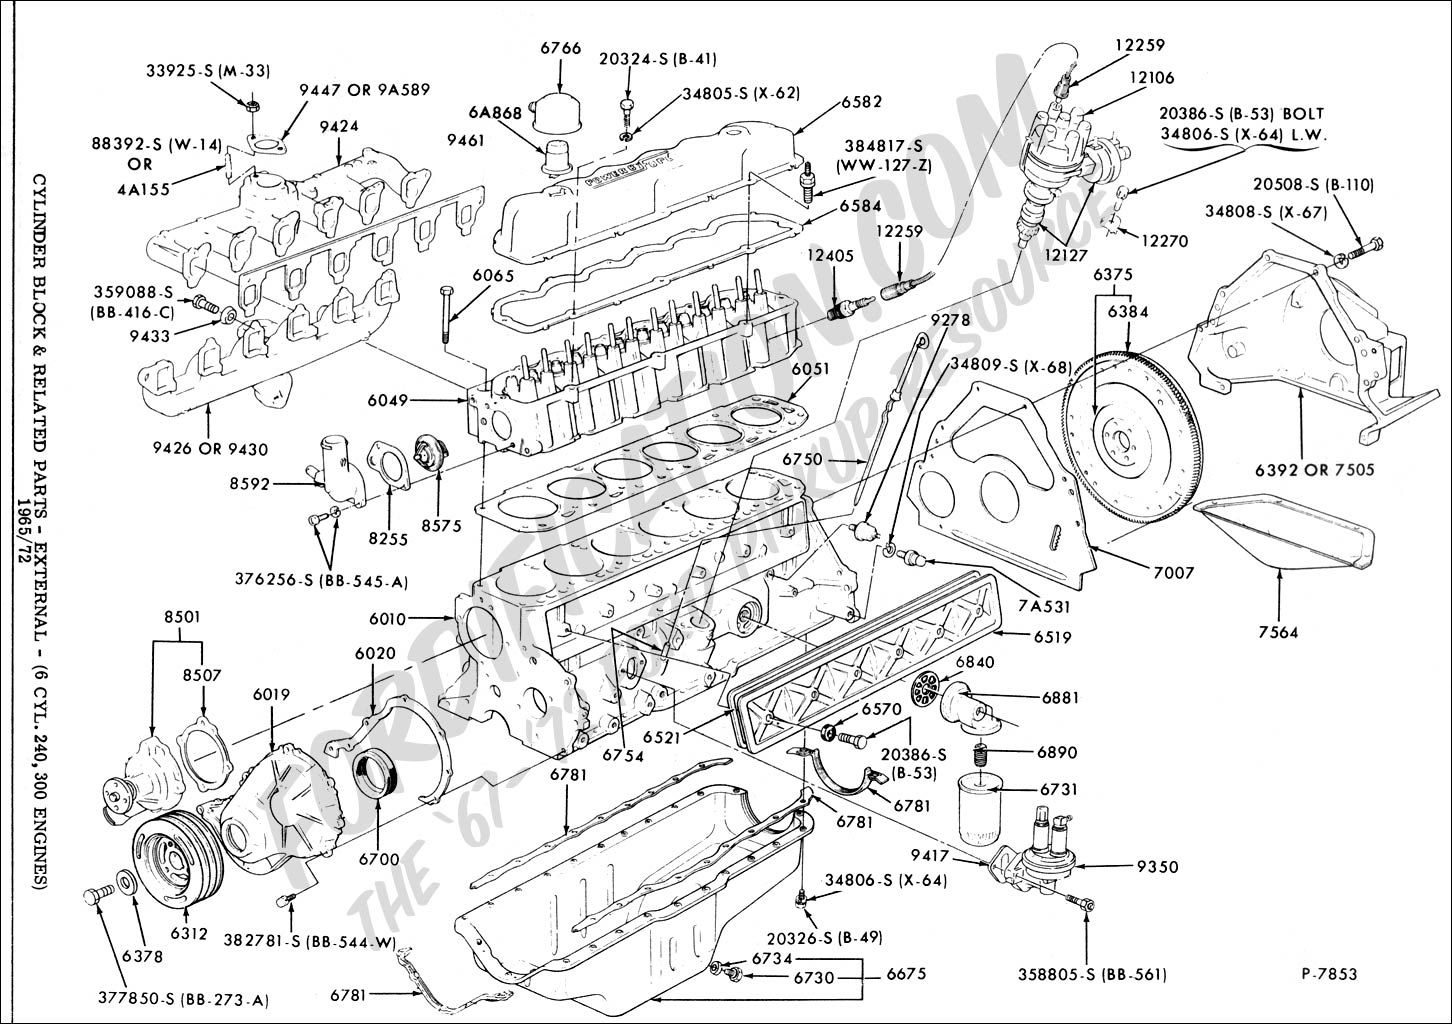 chevy v8 engine diagram wiring diagram paper [ 1452 x 1024 Pixel ]